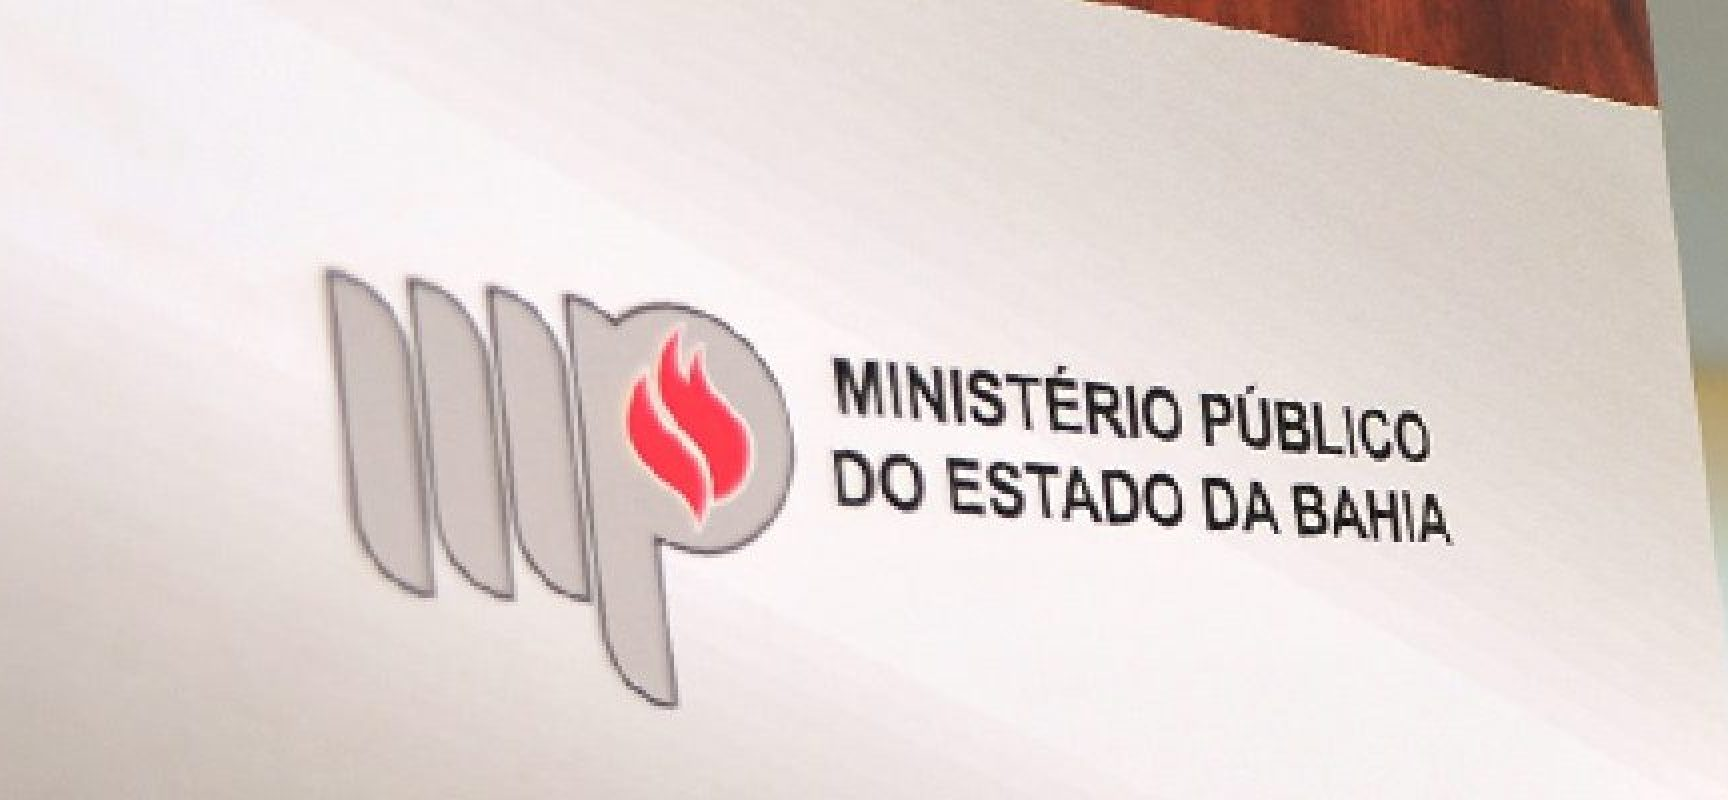 MP-BA PEDE PRISÃO PREVENTIVA DO PRESIDENTE E VICE DA CÂMARA